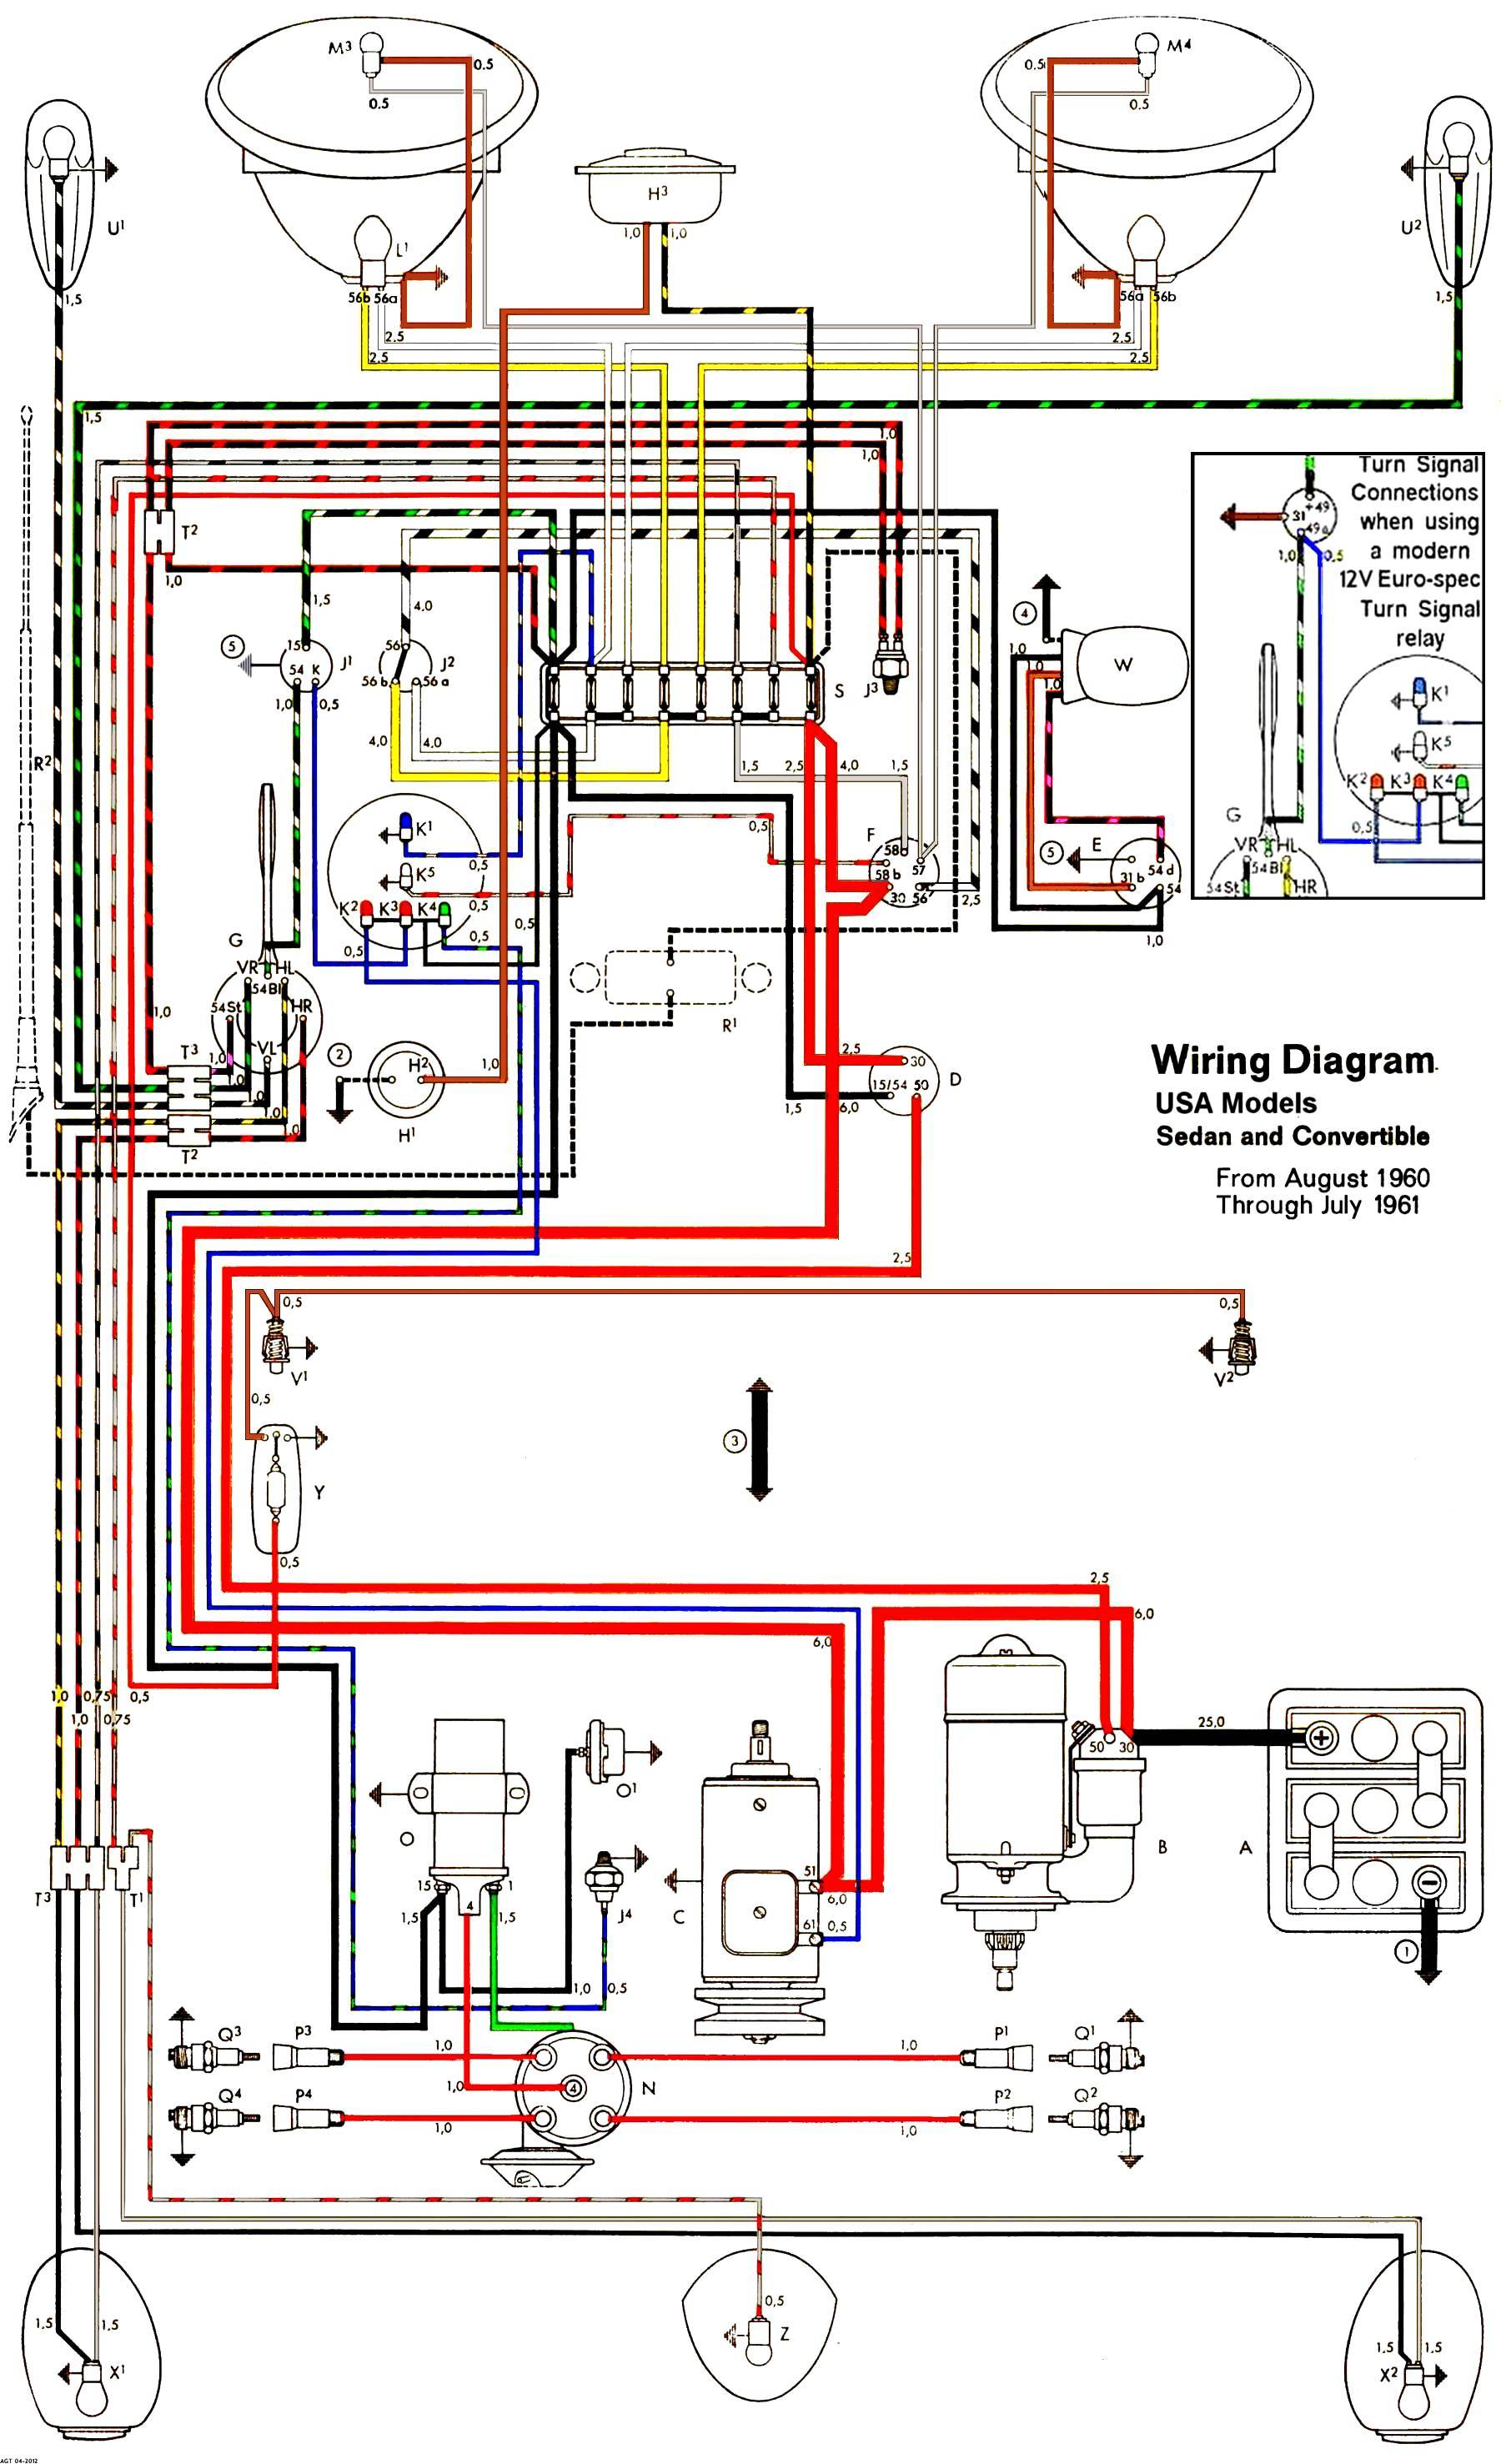 1961USA T1 thesamba com type 1 wiring diagrams  at creativeand.co